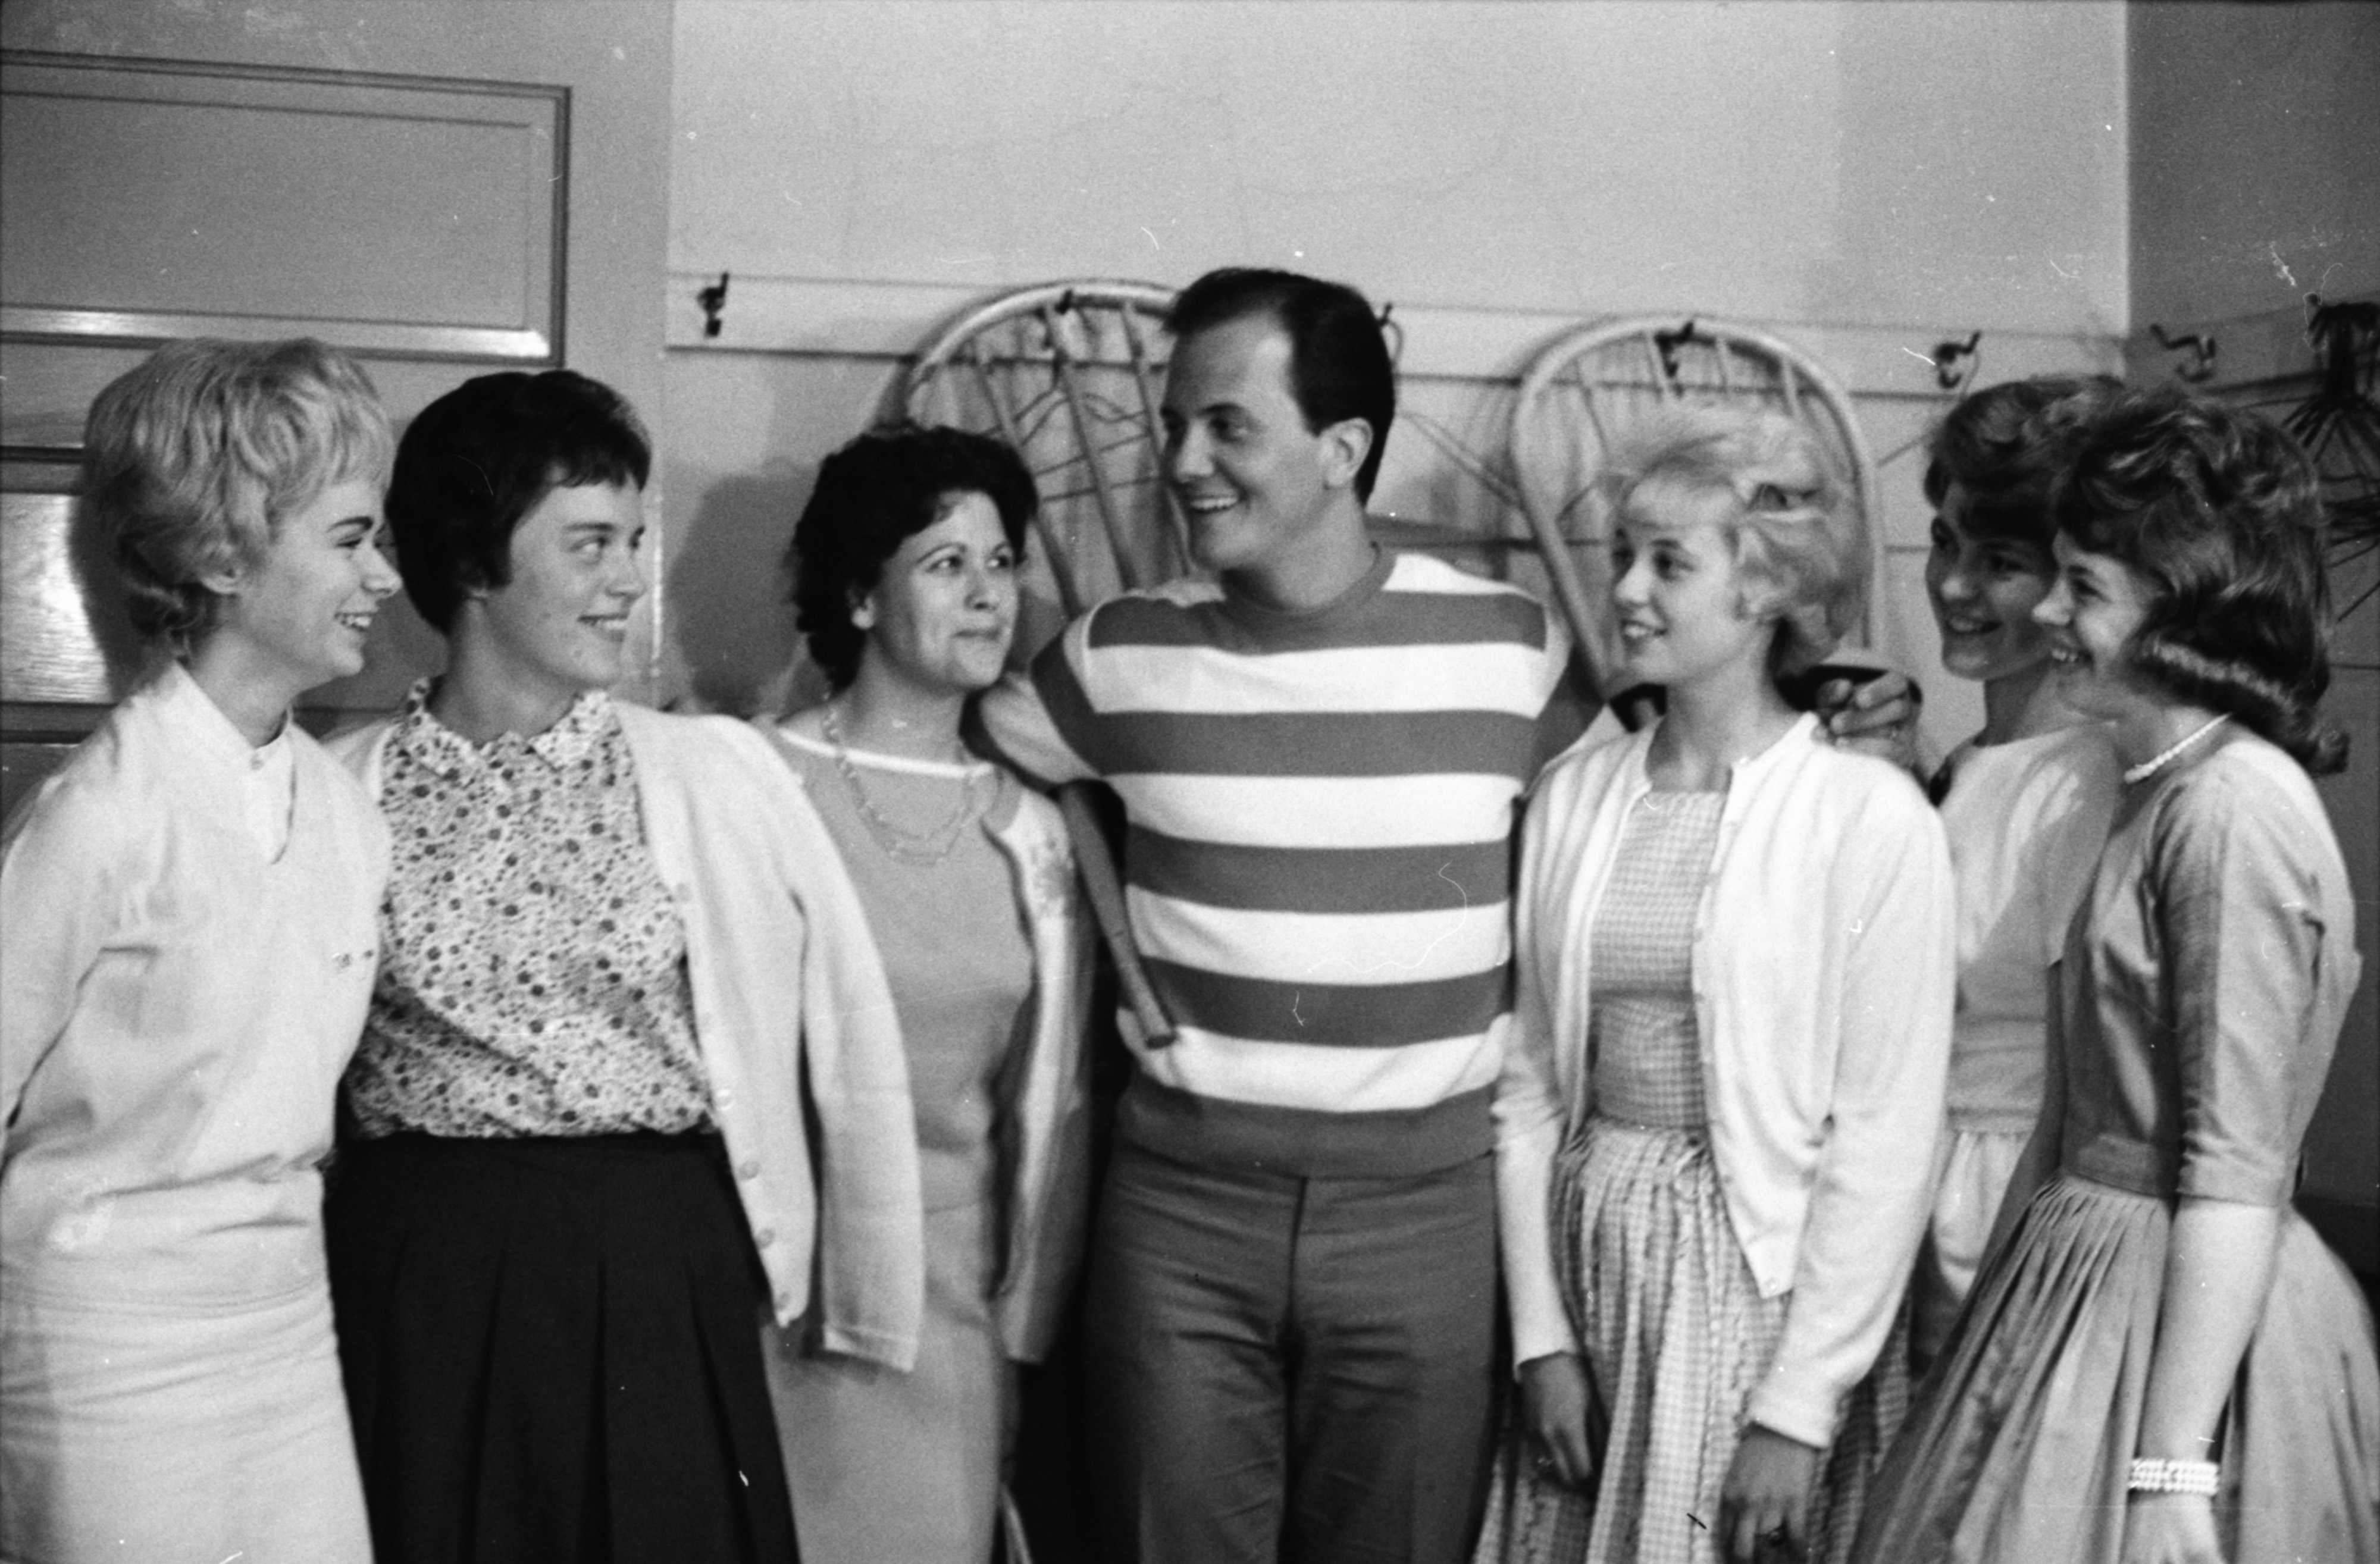 Pat Boone with local admirers, June 1963 image